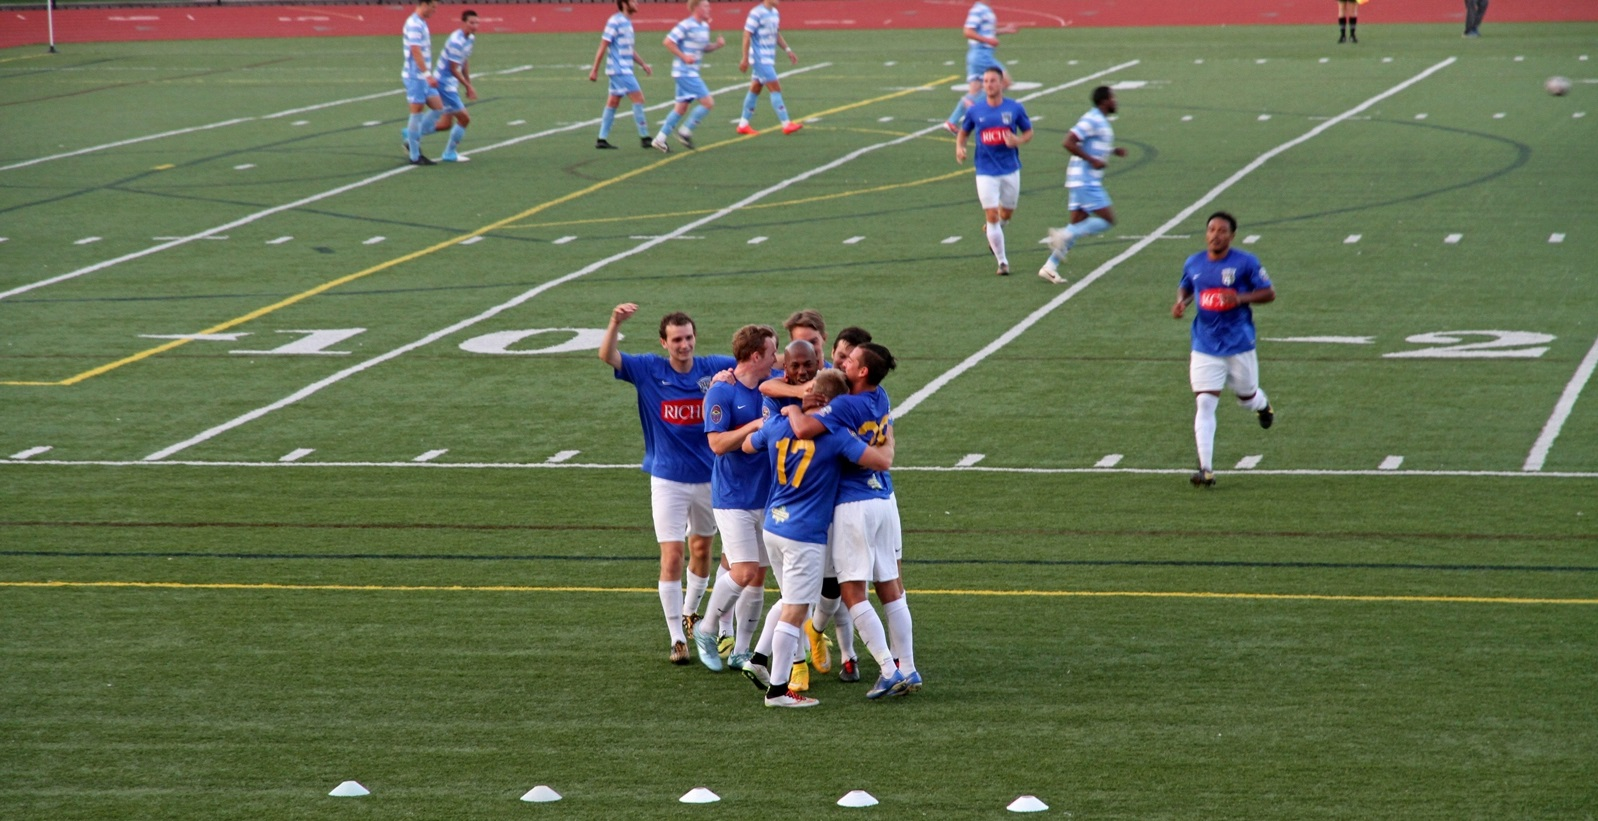 FC Buffalo celebrates a goal in its crucial 2015 win over Lansing United. (Erica Morano/Special to The News)